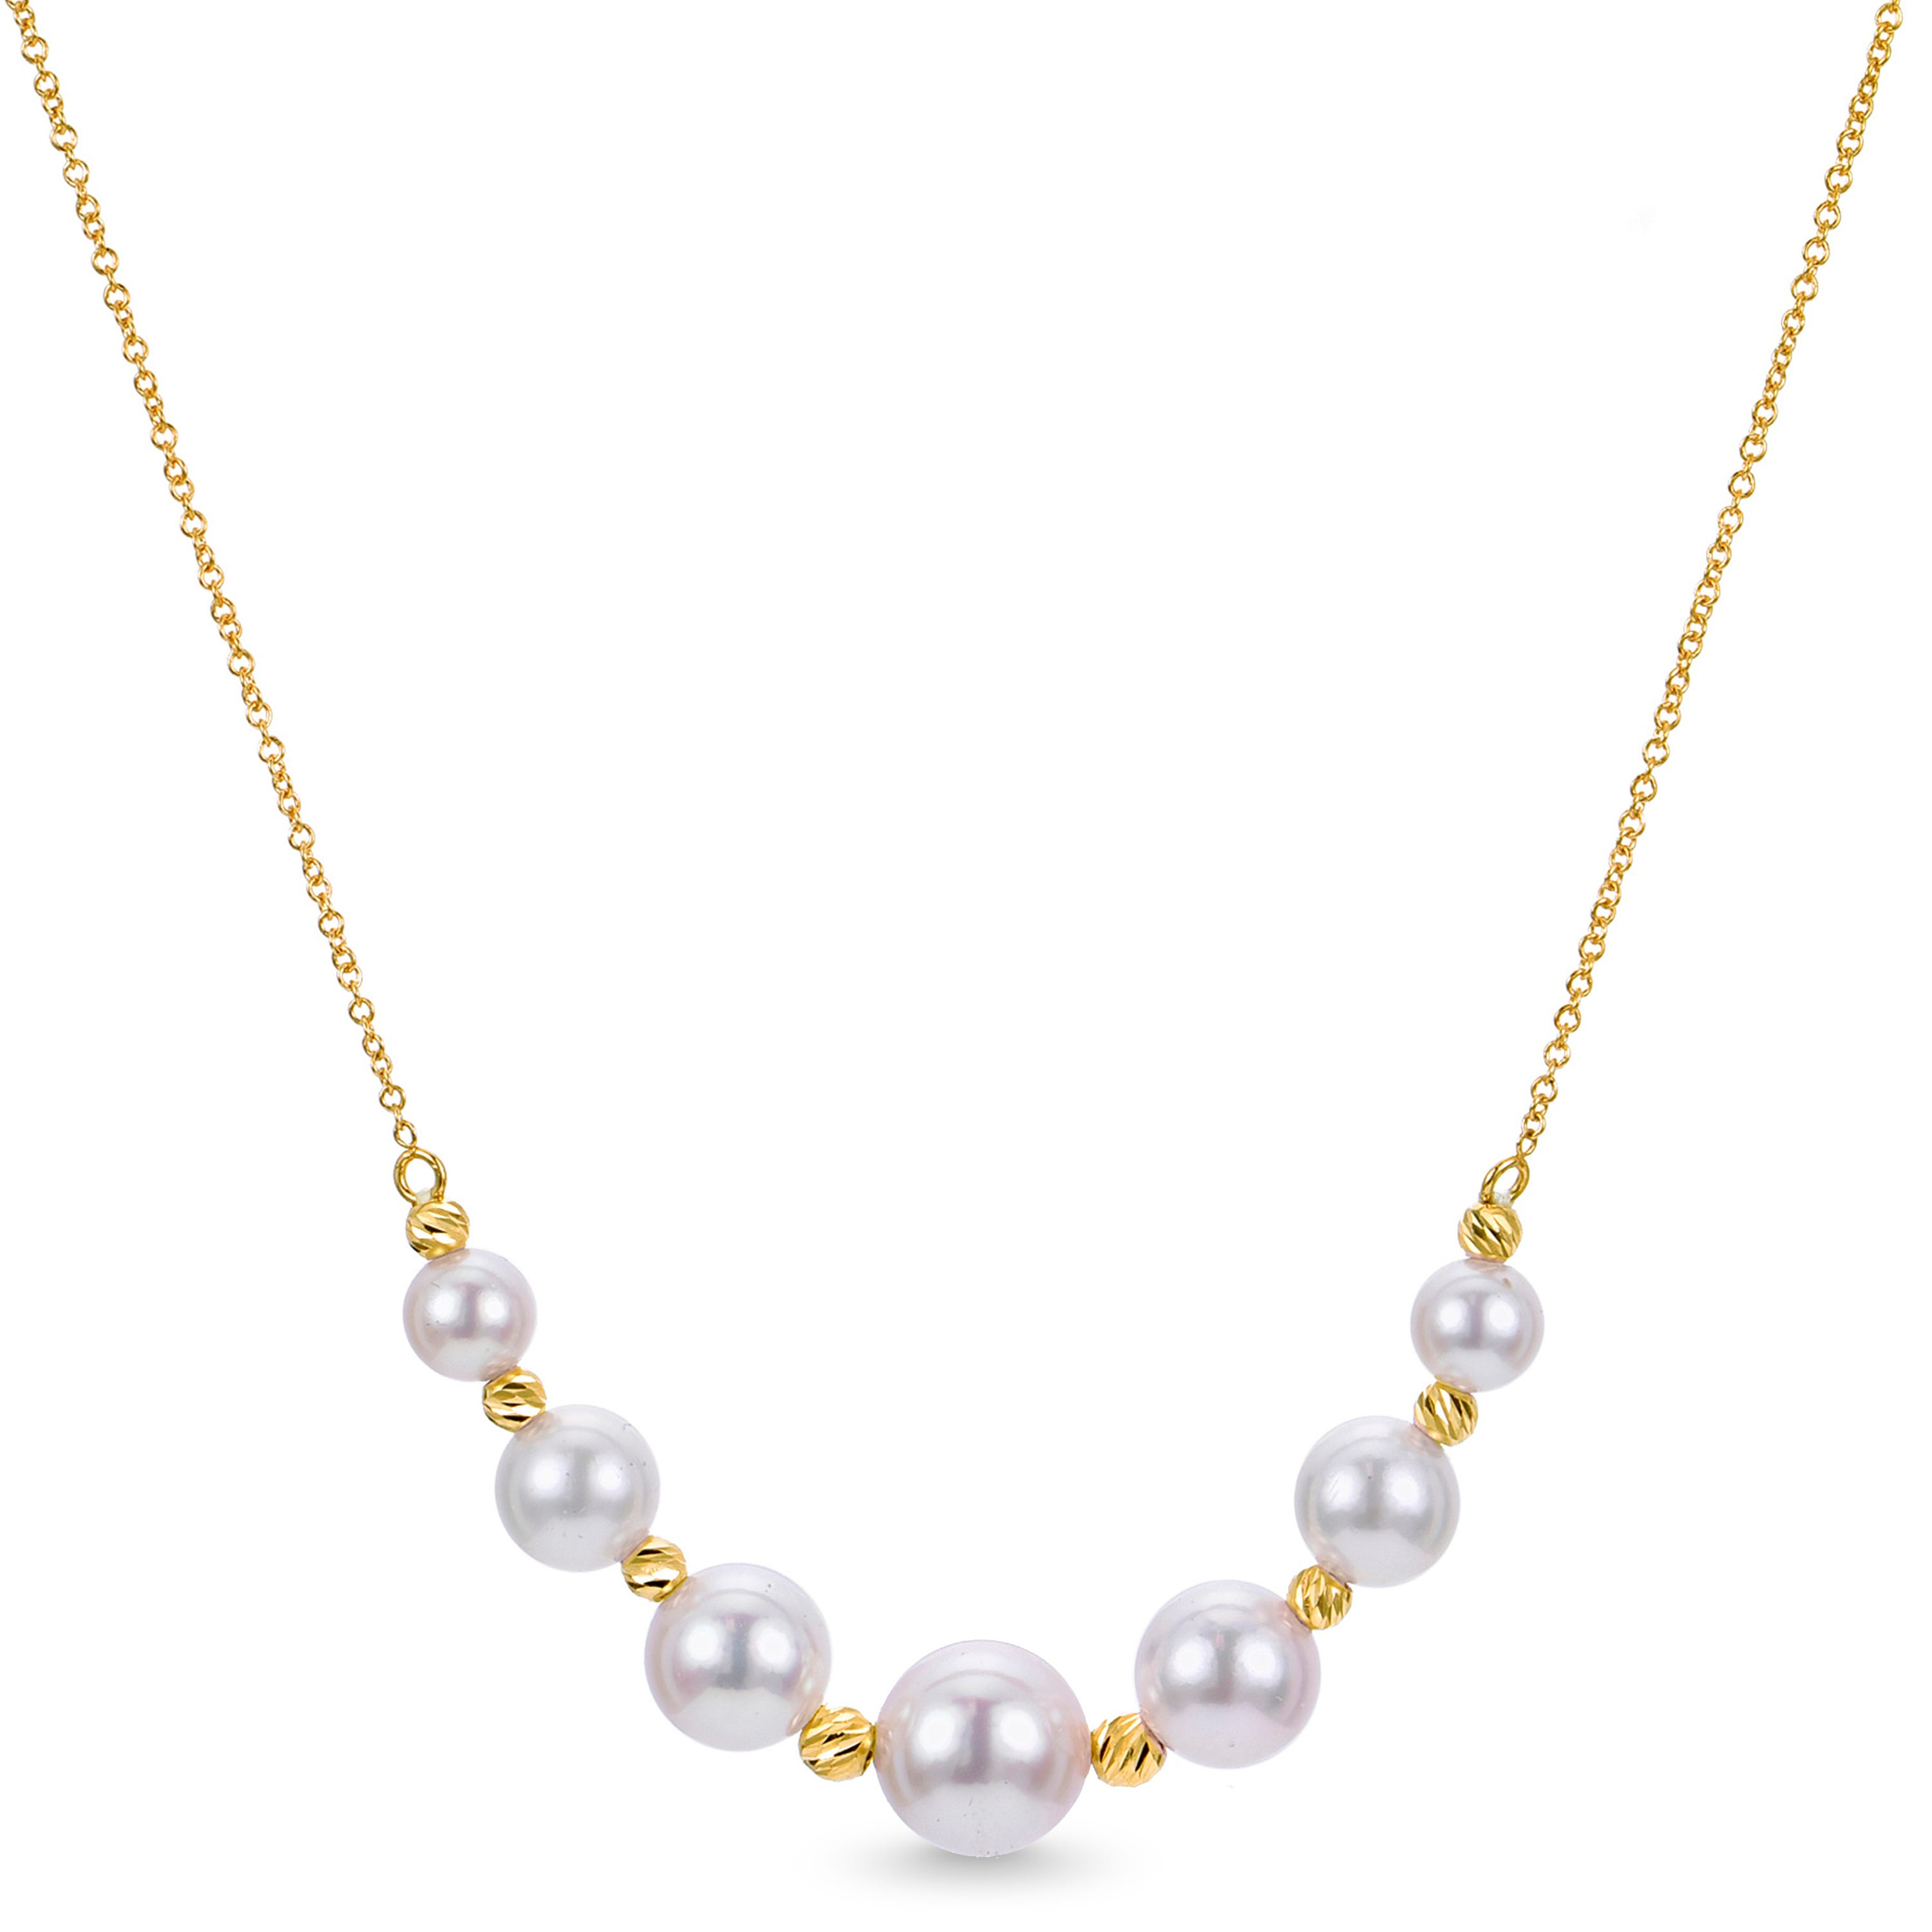 Akoya Pearl Graduated Bead Necklace in 14k Yellow Gold